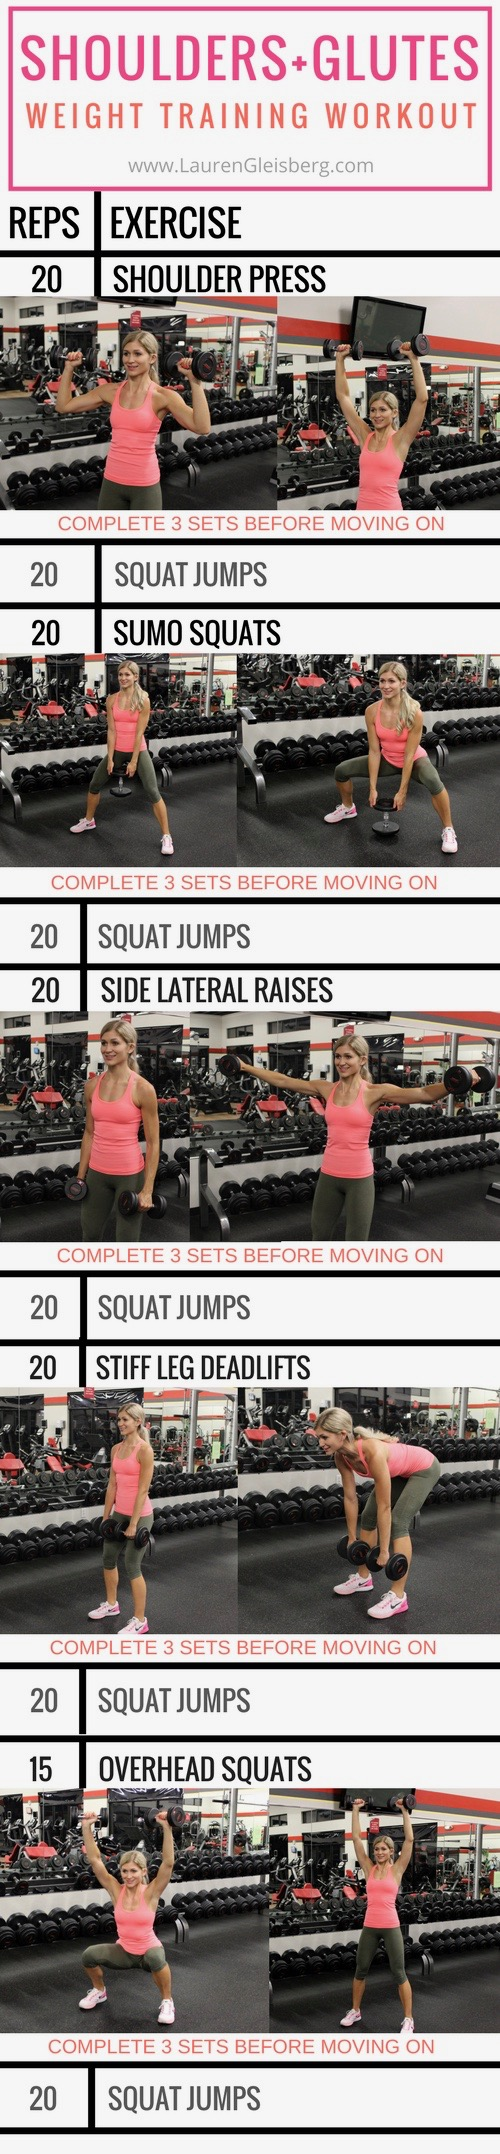 9a314df6632d9 For anyone interested in becoming more consistent with weights, here are  some excellent resources I have used from Lauren Gleisberg